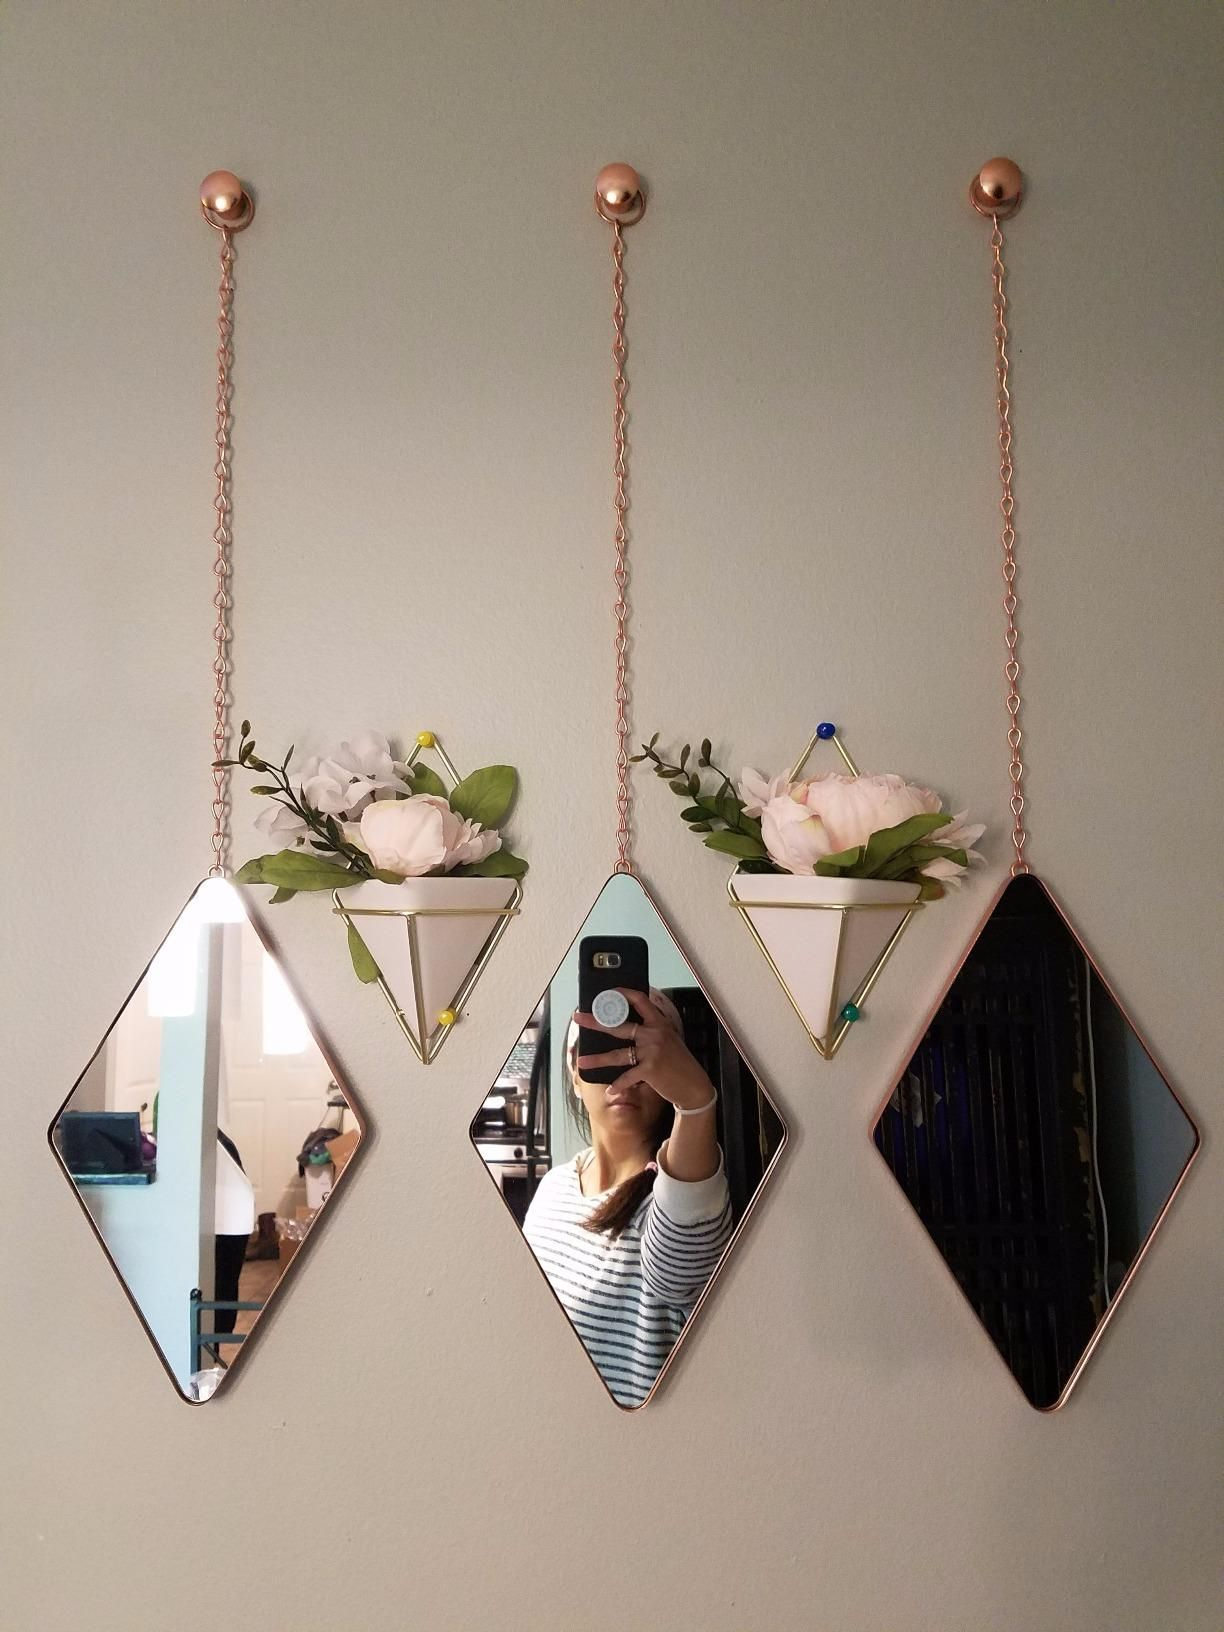 Recent Trigg Ceramic Planter Wall Decor For Amazonsmile: Umbra Trigg Hanging Planter Vase & Geometric Wall Decor (Gallery 2 of 20)